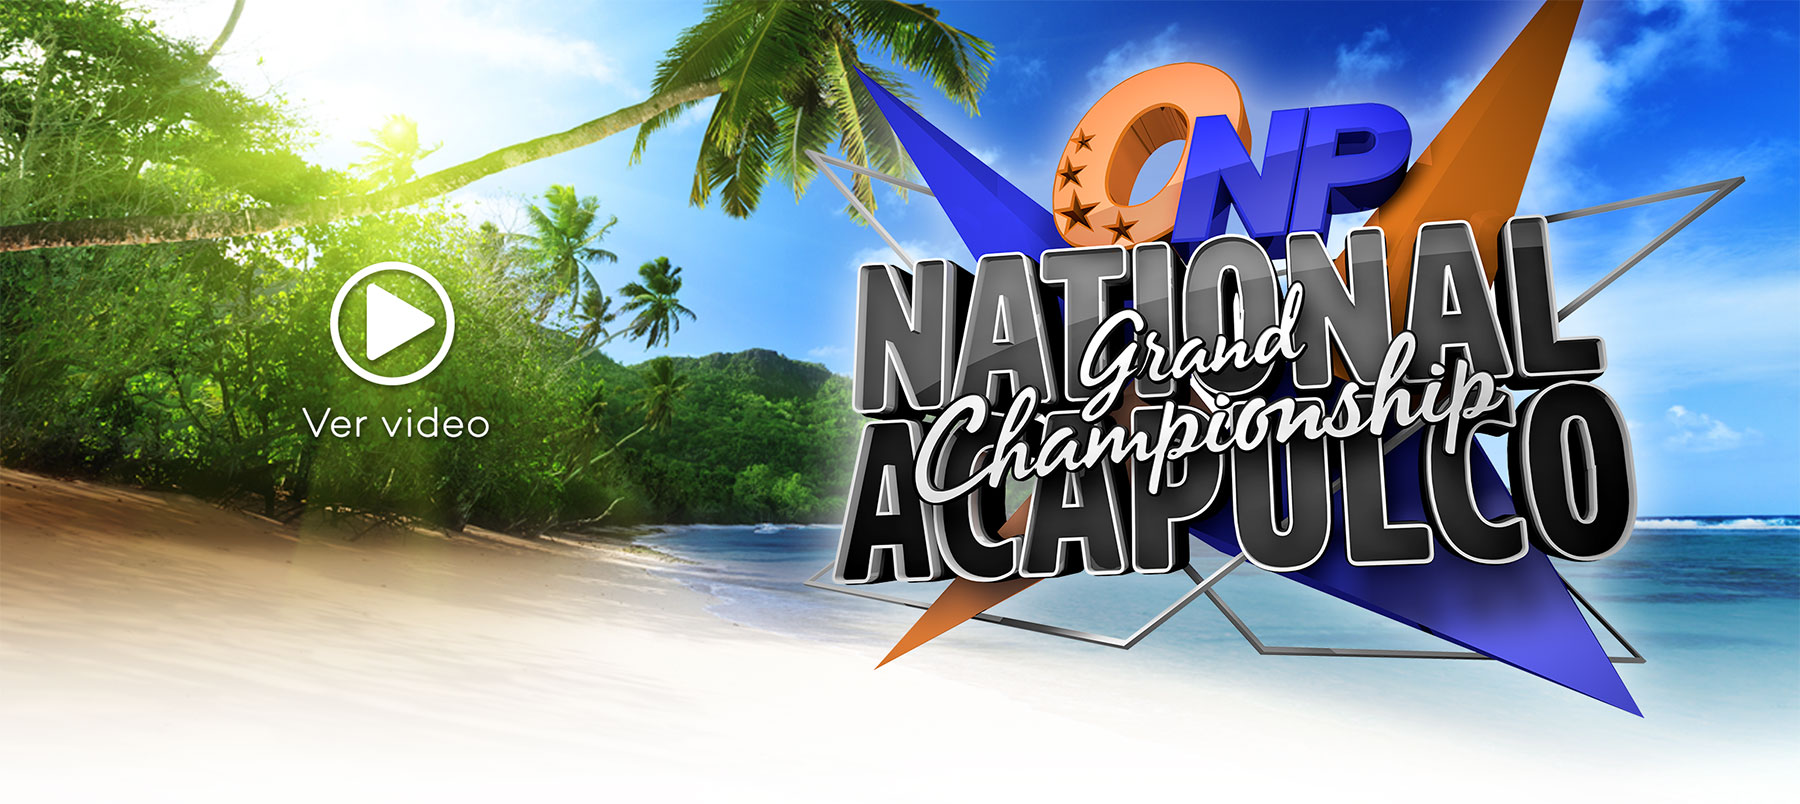 Grand Championship National Acapulco